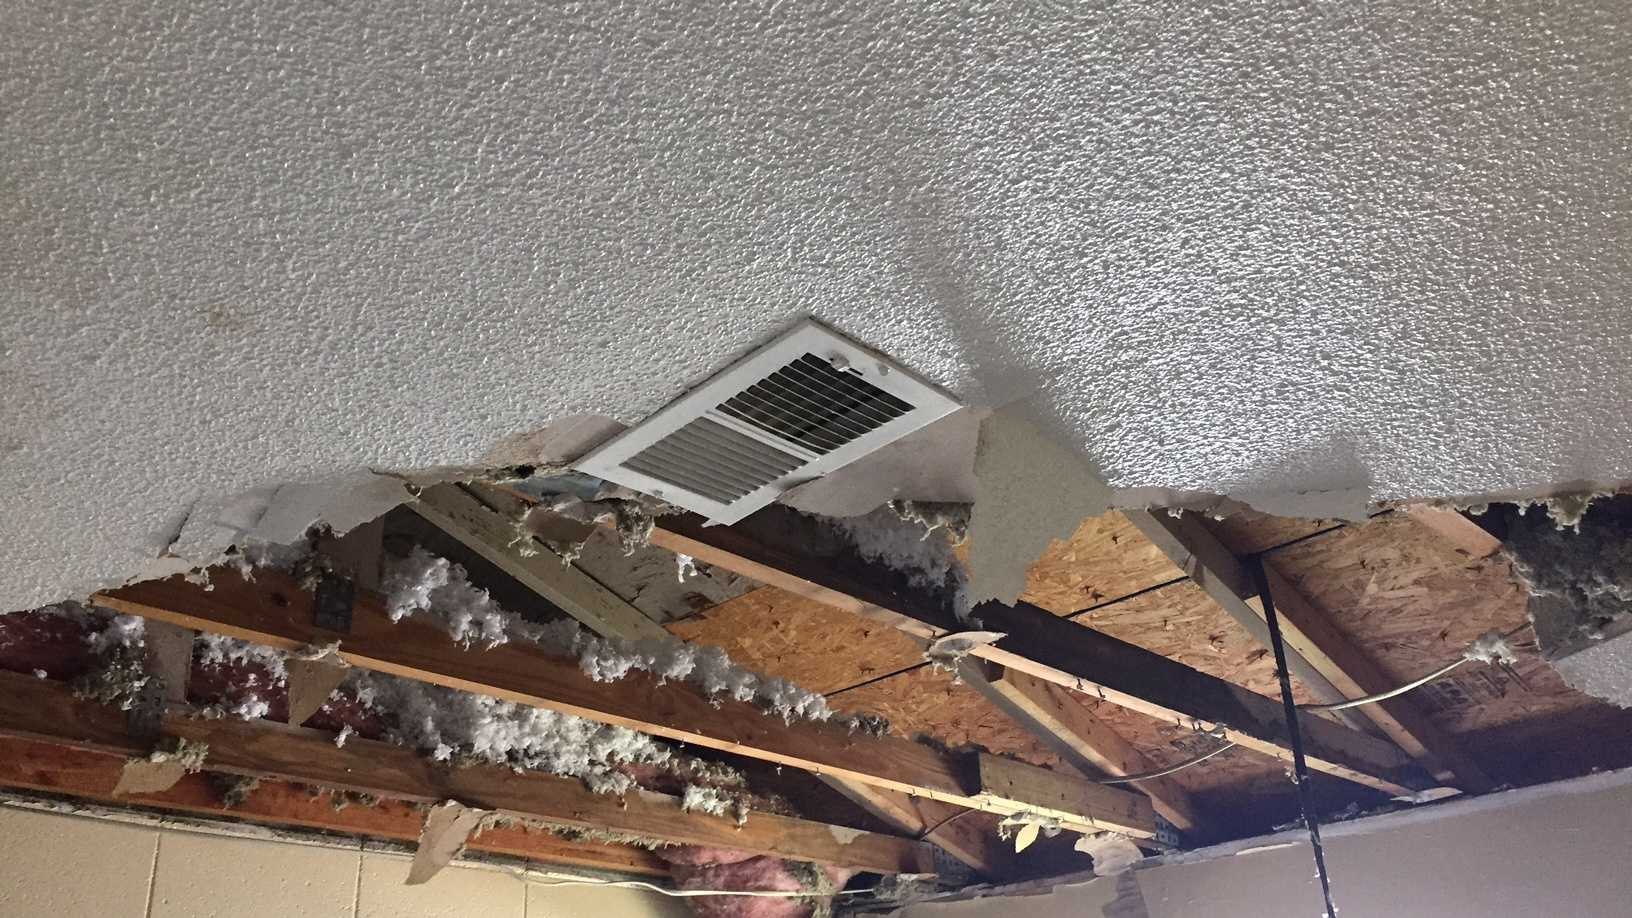 Drywall and insulation fell from the ceiling and left a hole several feet wide.